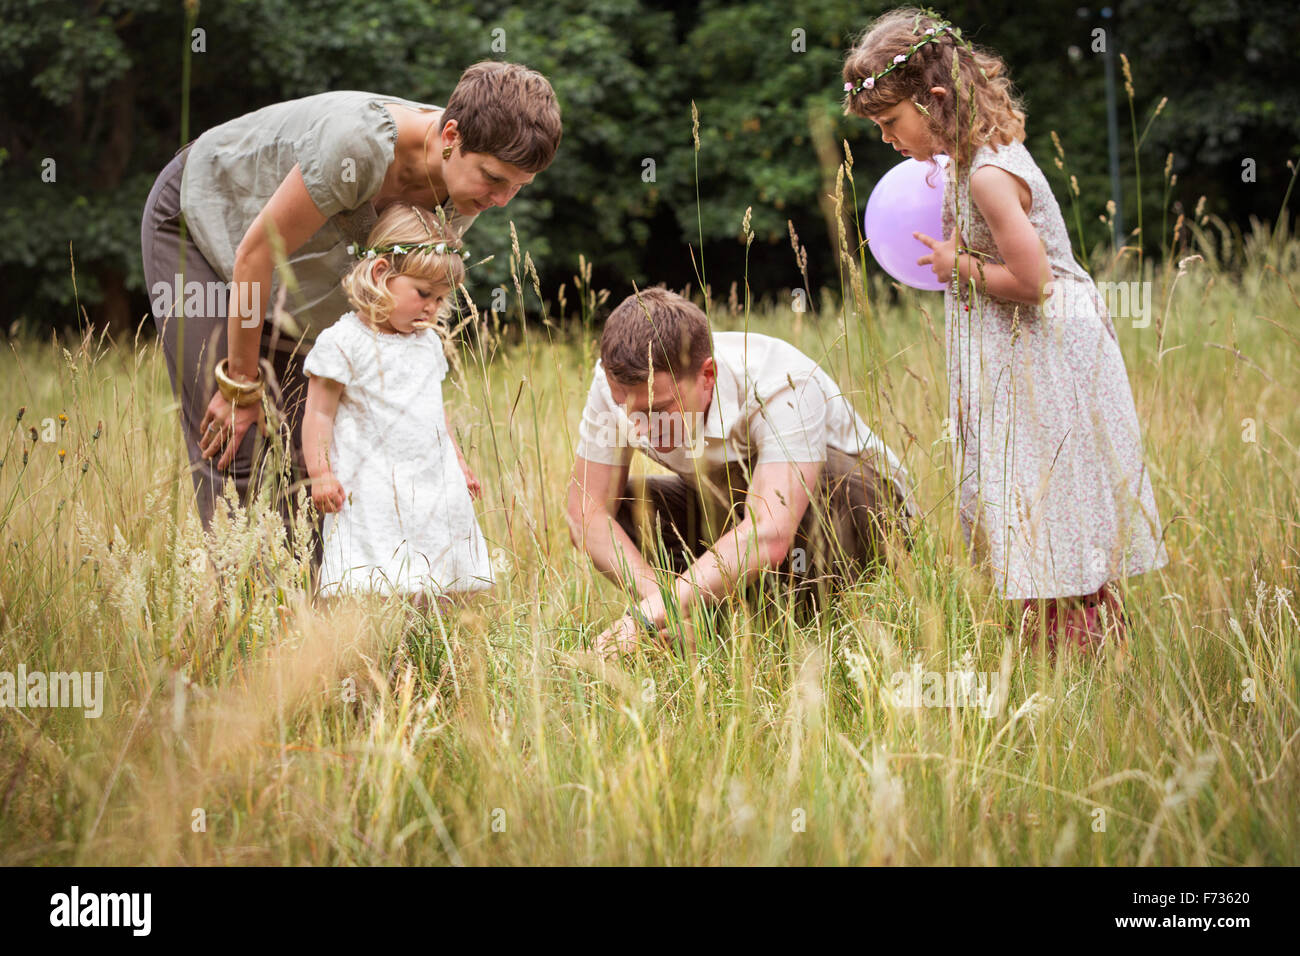 Family with two children playing in a meadow. - Stock Image